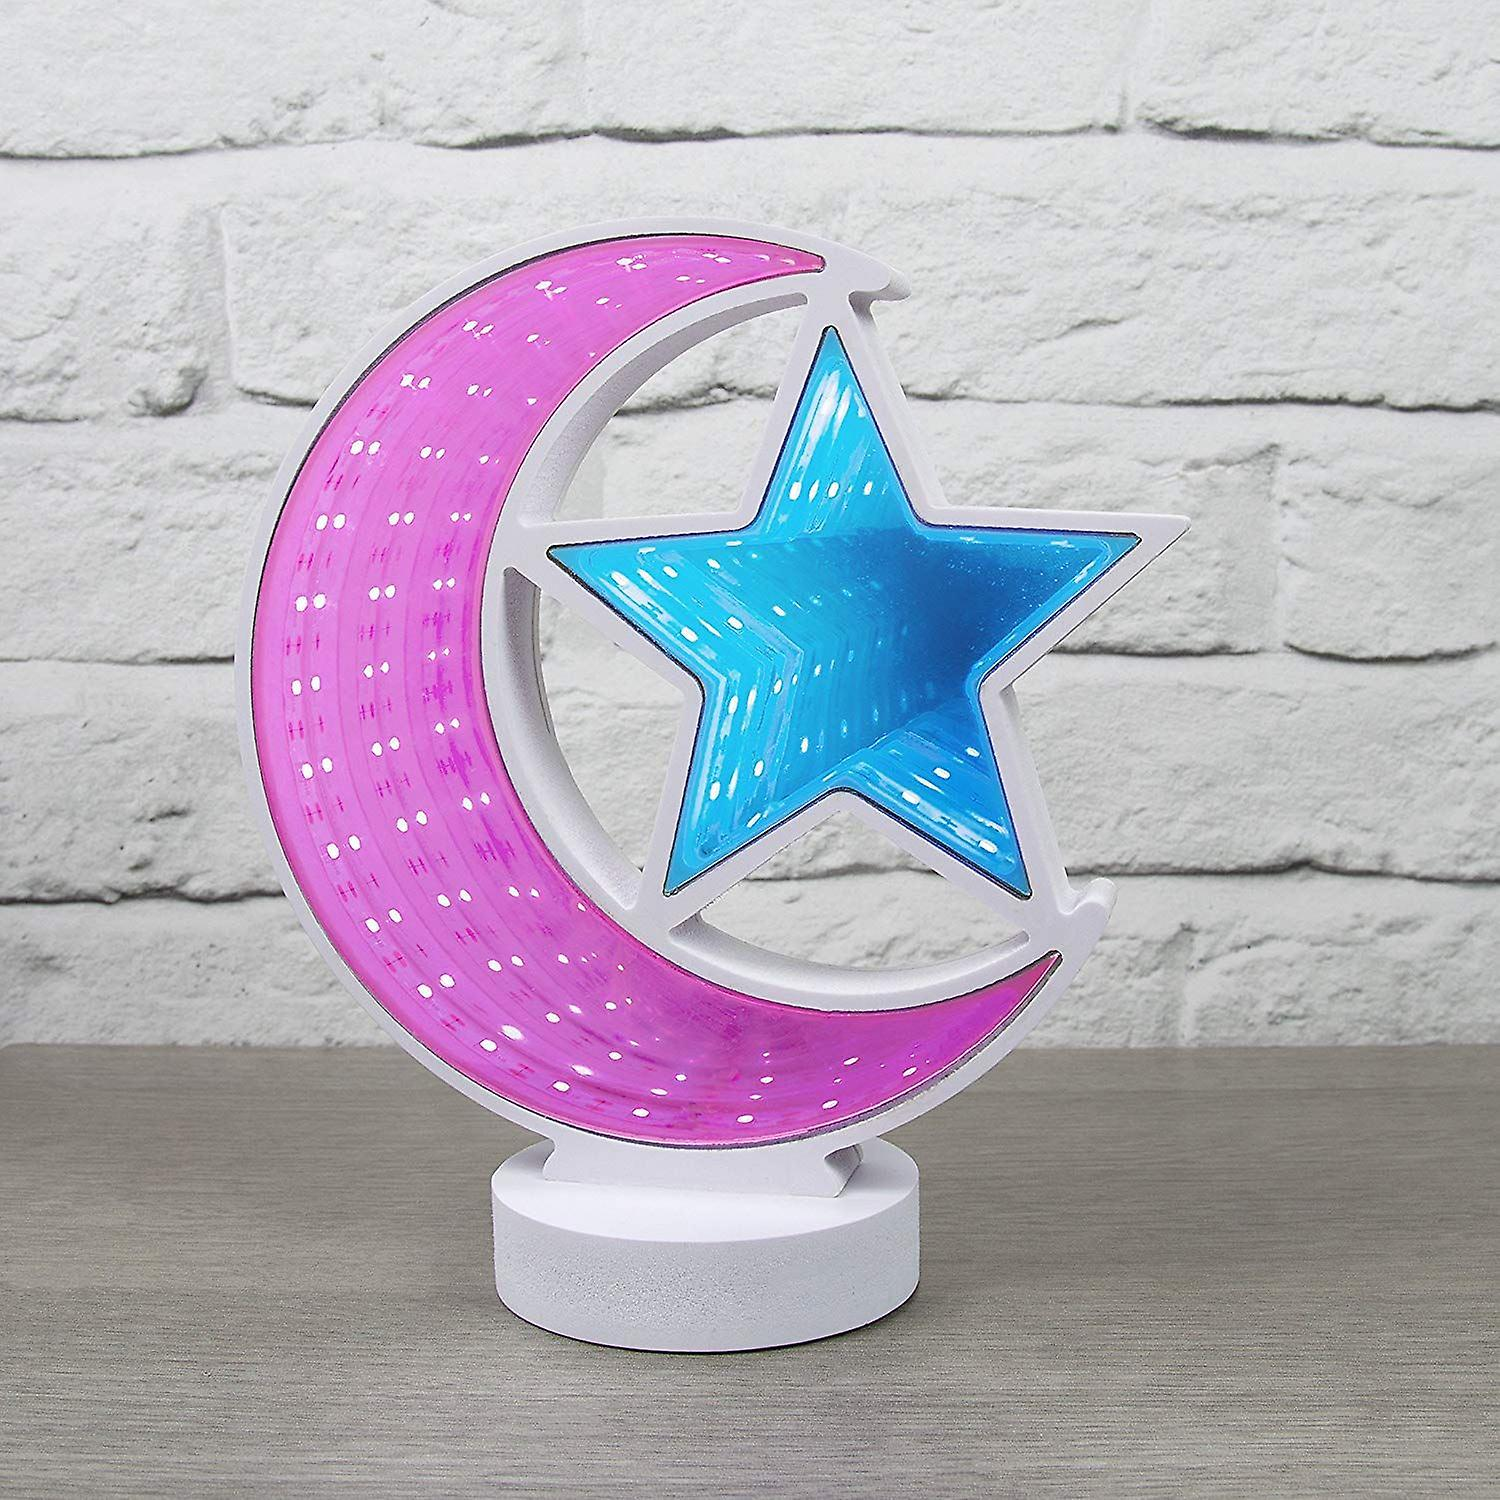 Global Gizmos Moon & Star Infinity Mirror Light Mood Tunnel Light with Pink & Blue LED's